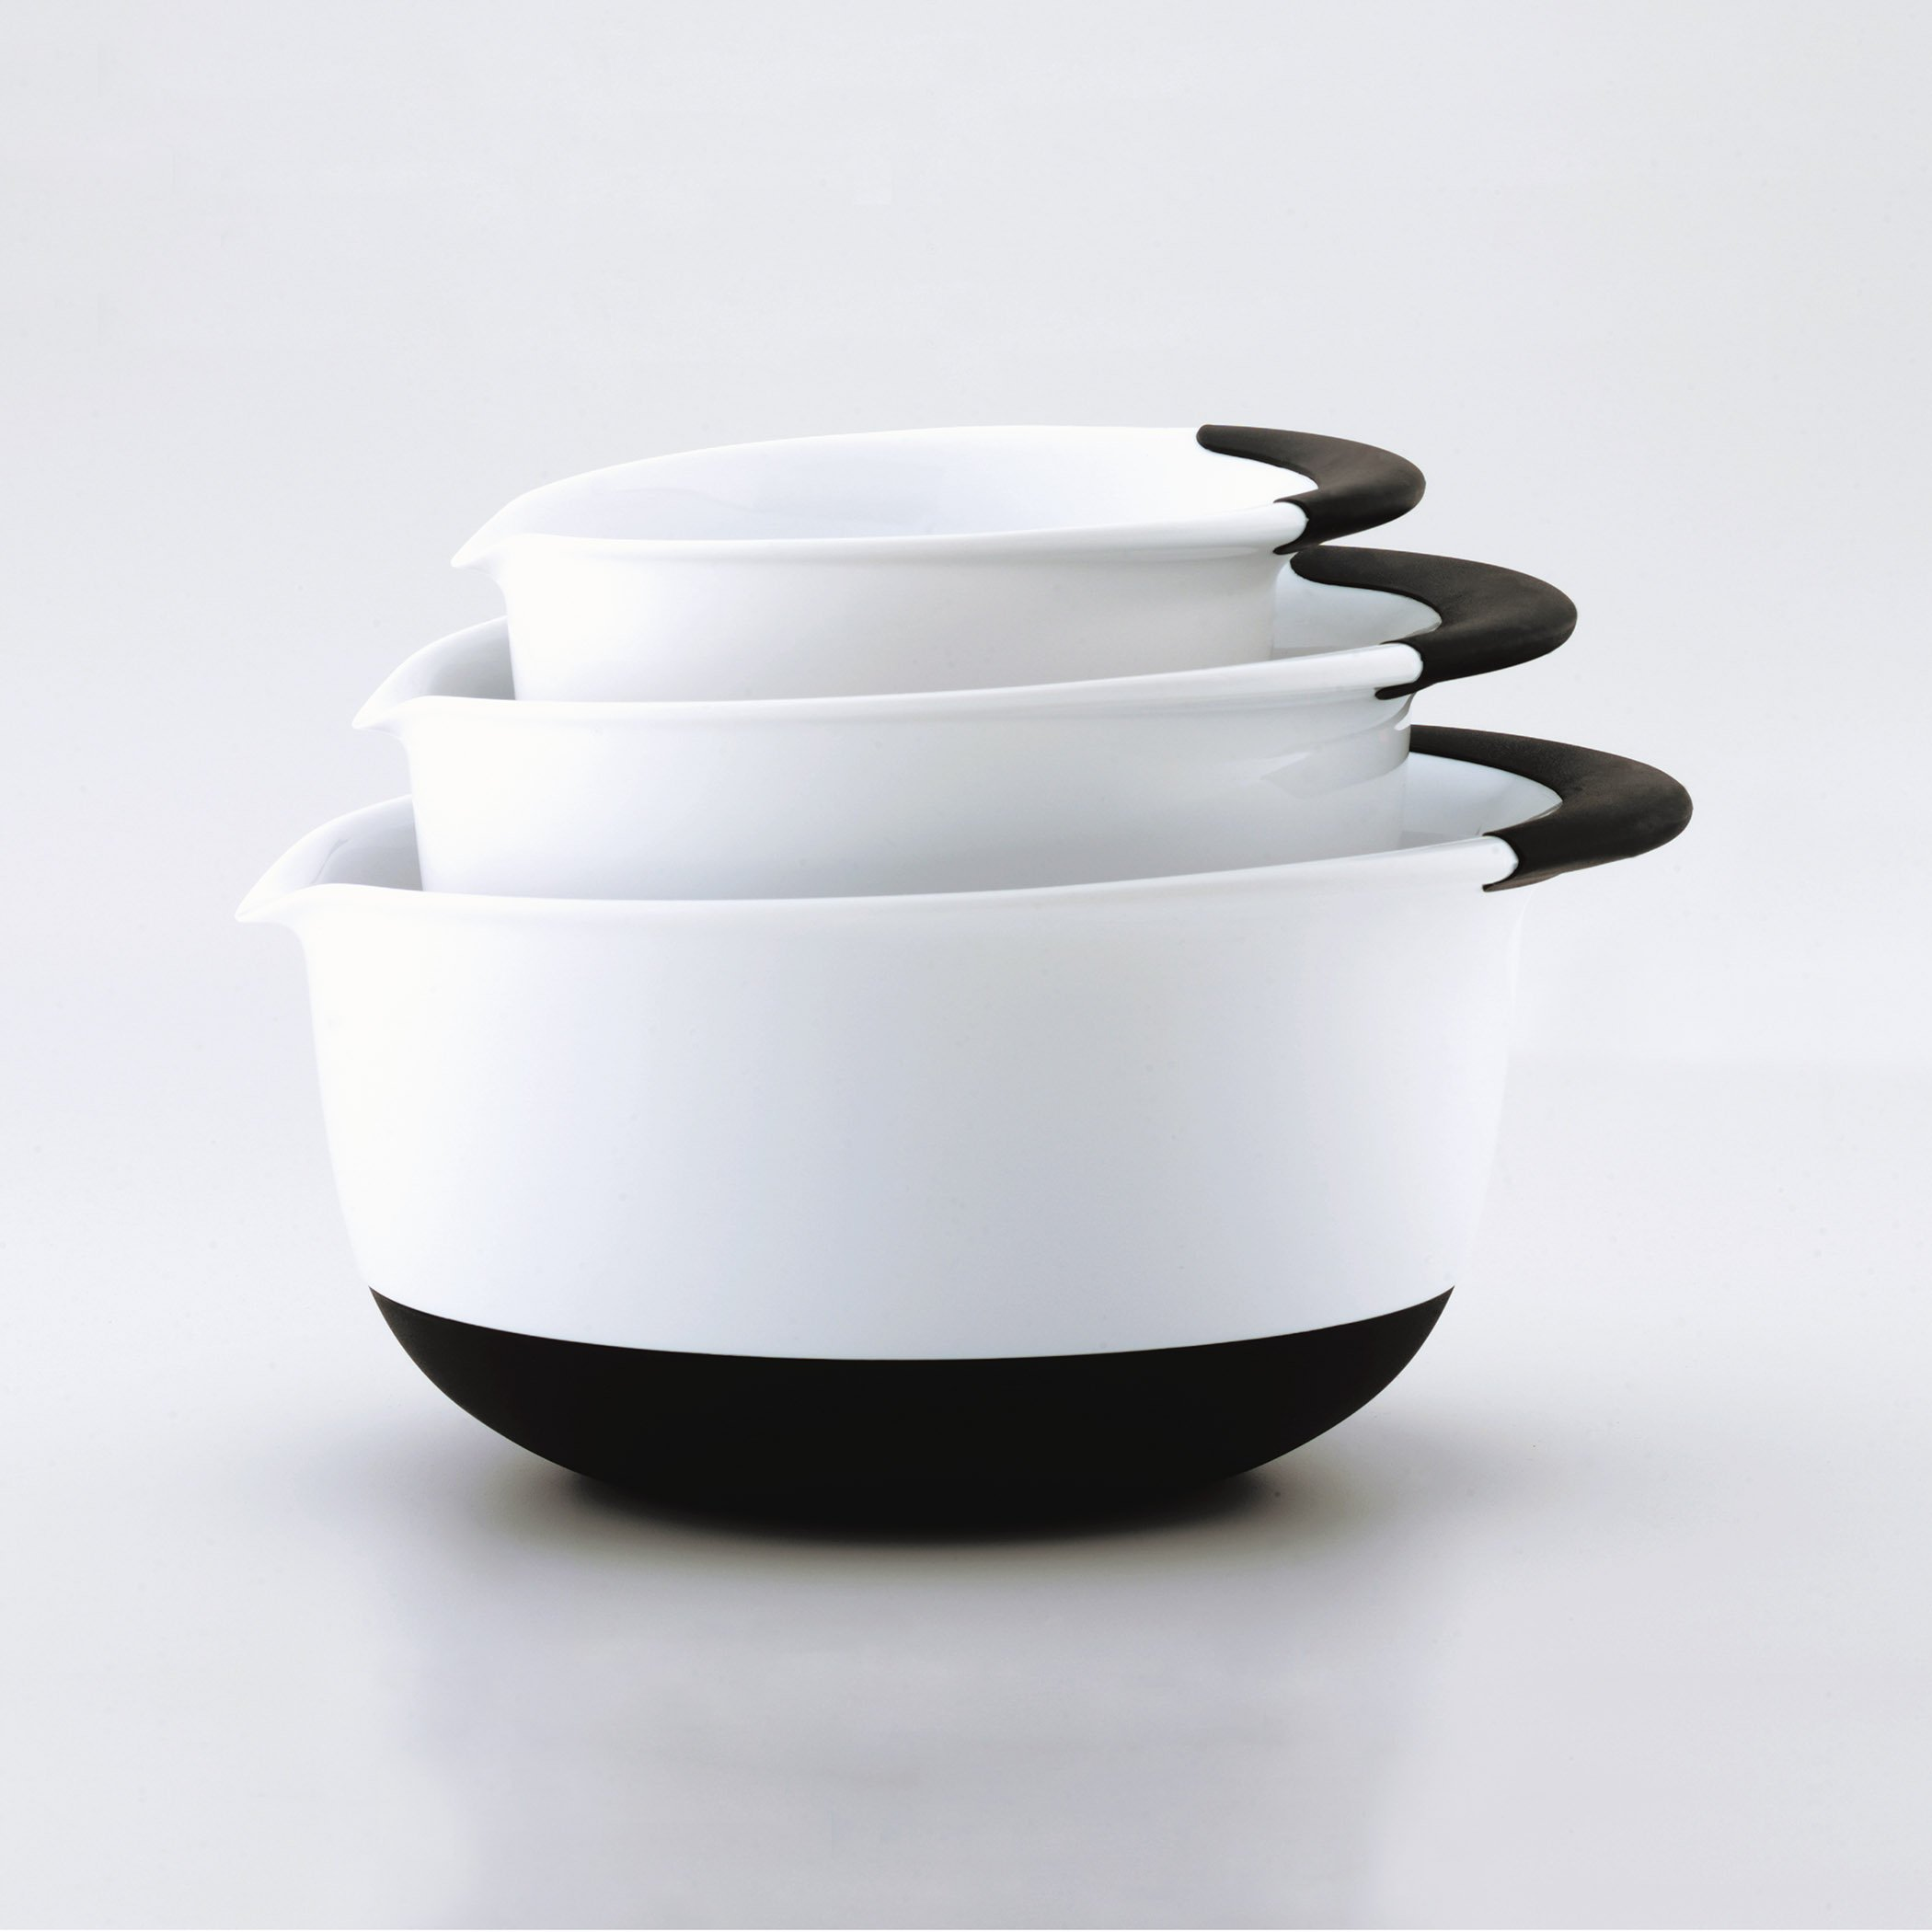 OXO Good Grips Mixing Bowl Set with Black Handles, 3-Piece by OXO (Image #8)